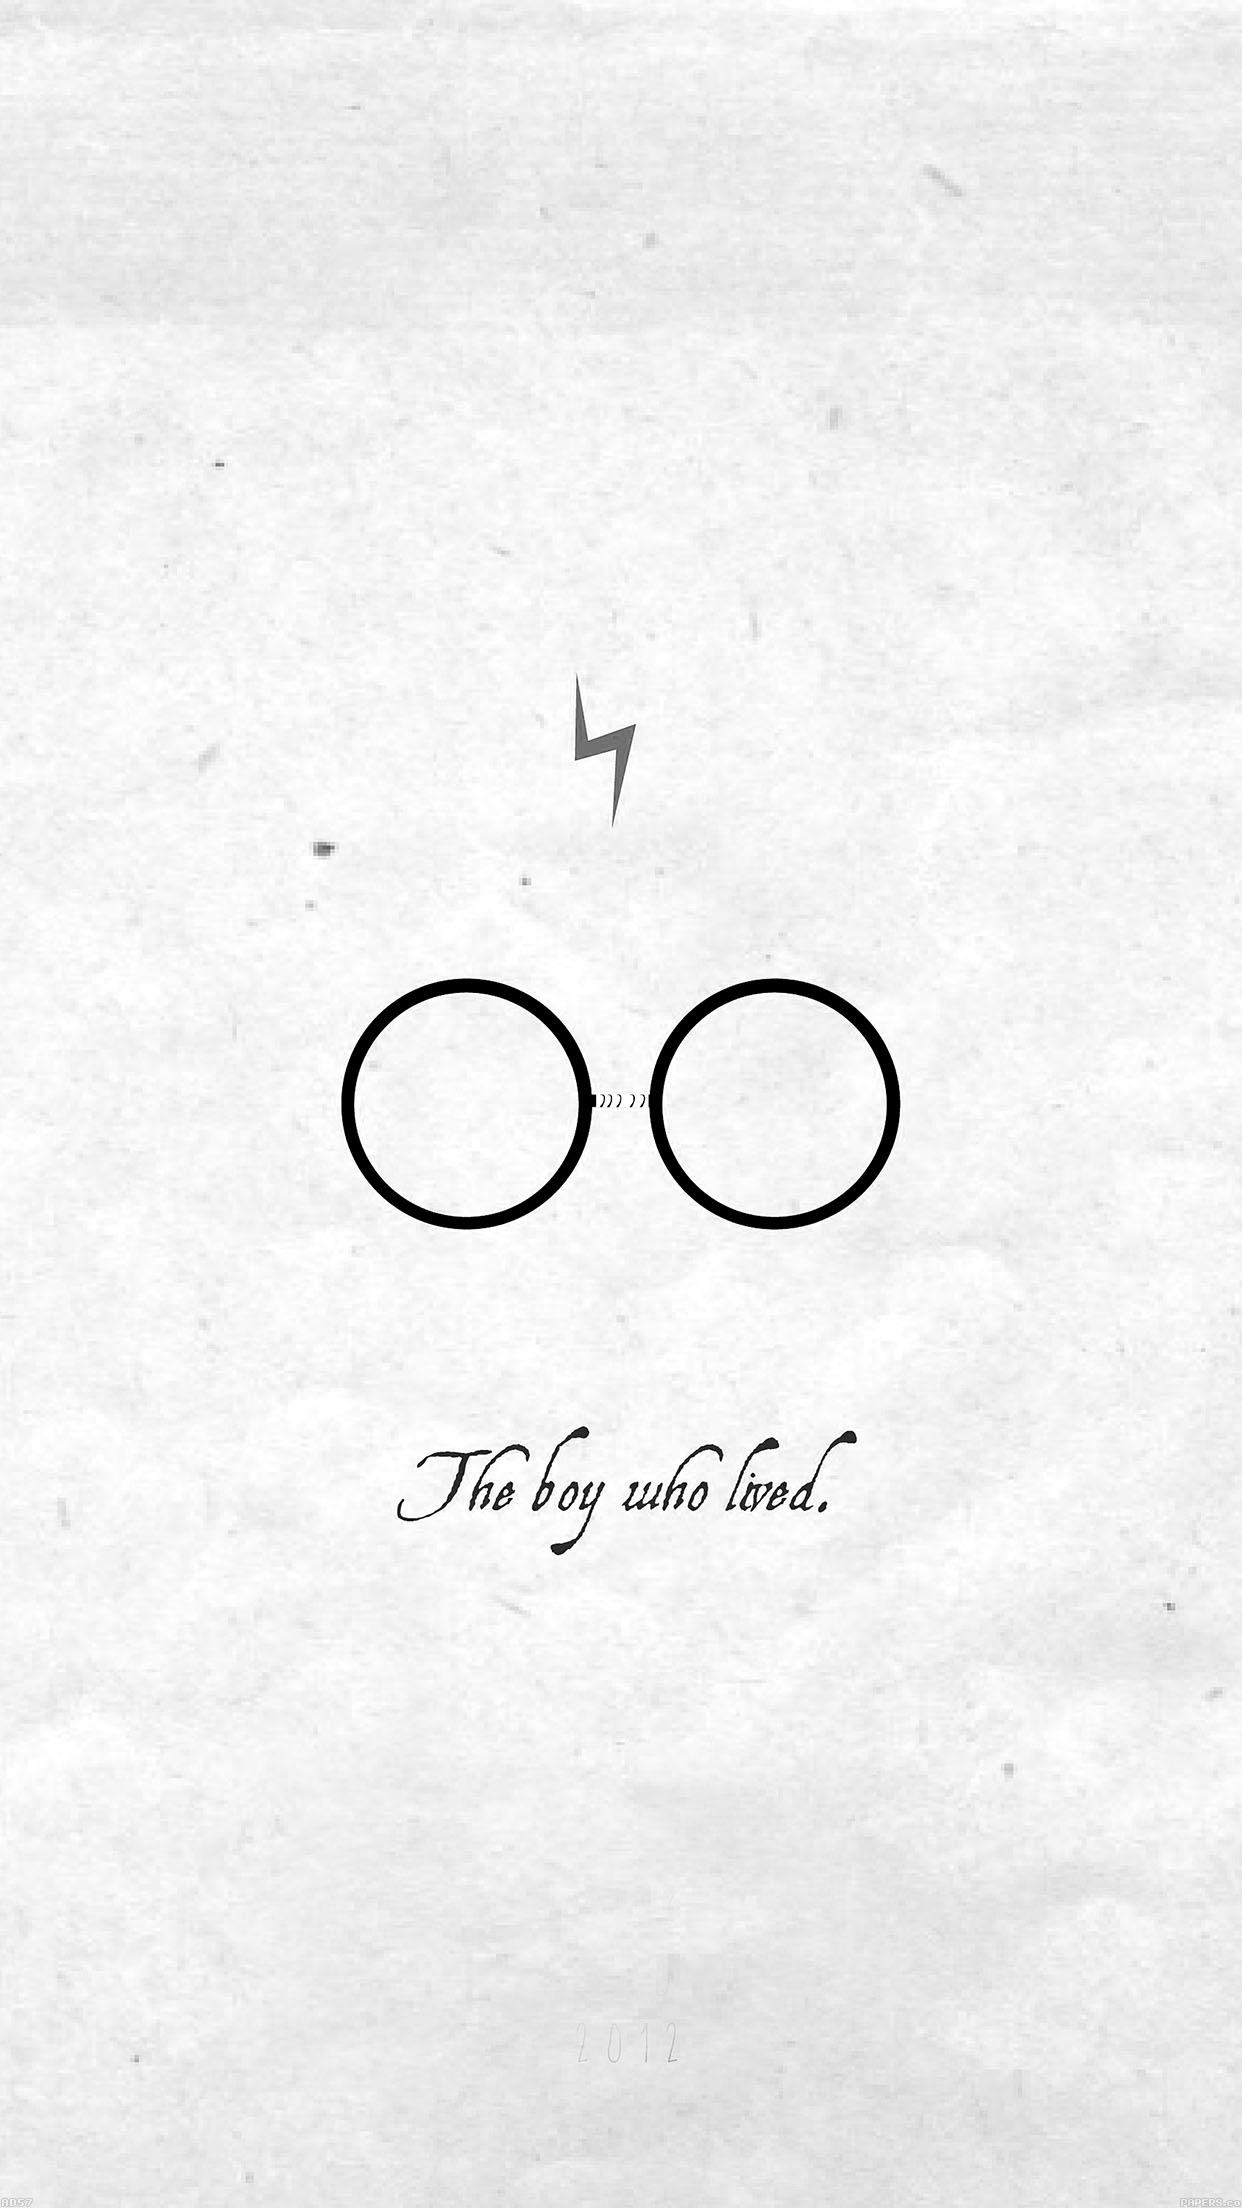 85070915 papers co ad57 harry potter dark quote film 34 iphone6 plus wallpaper